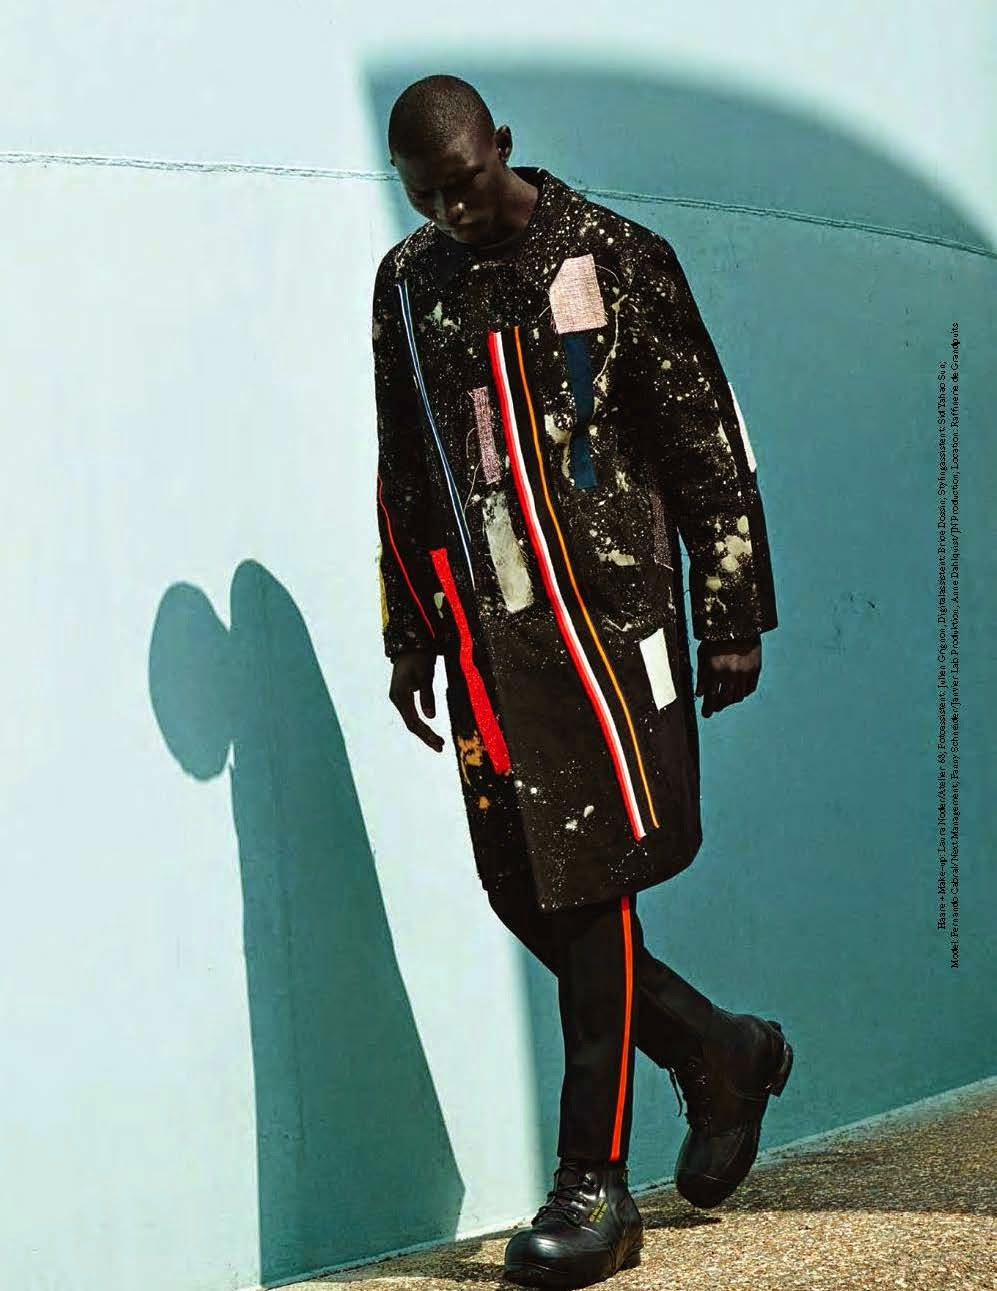 raf simons   x   ruby sterling   editorial // shot by  julia non i   // styled by  tobias frericks    //  gq germany      fall 2014